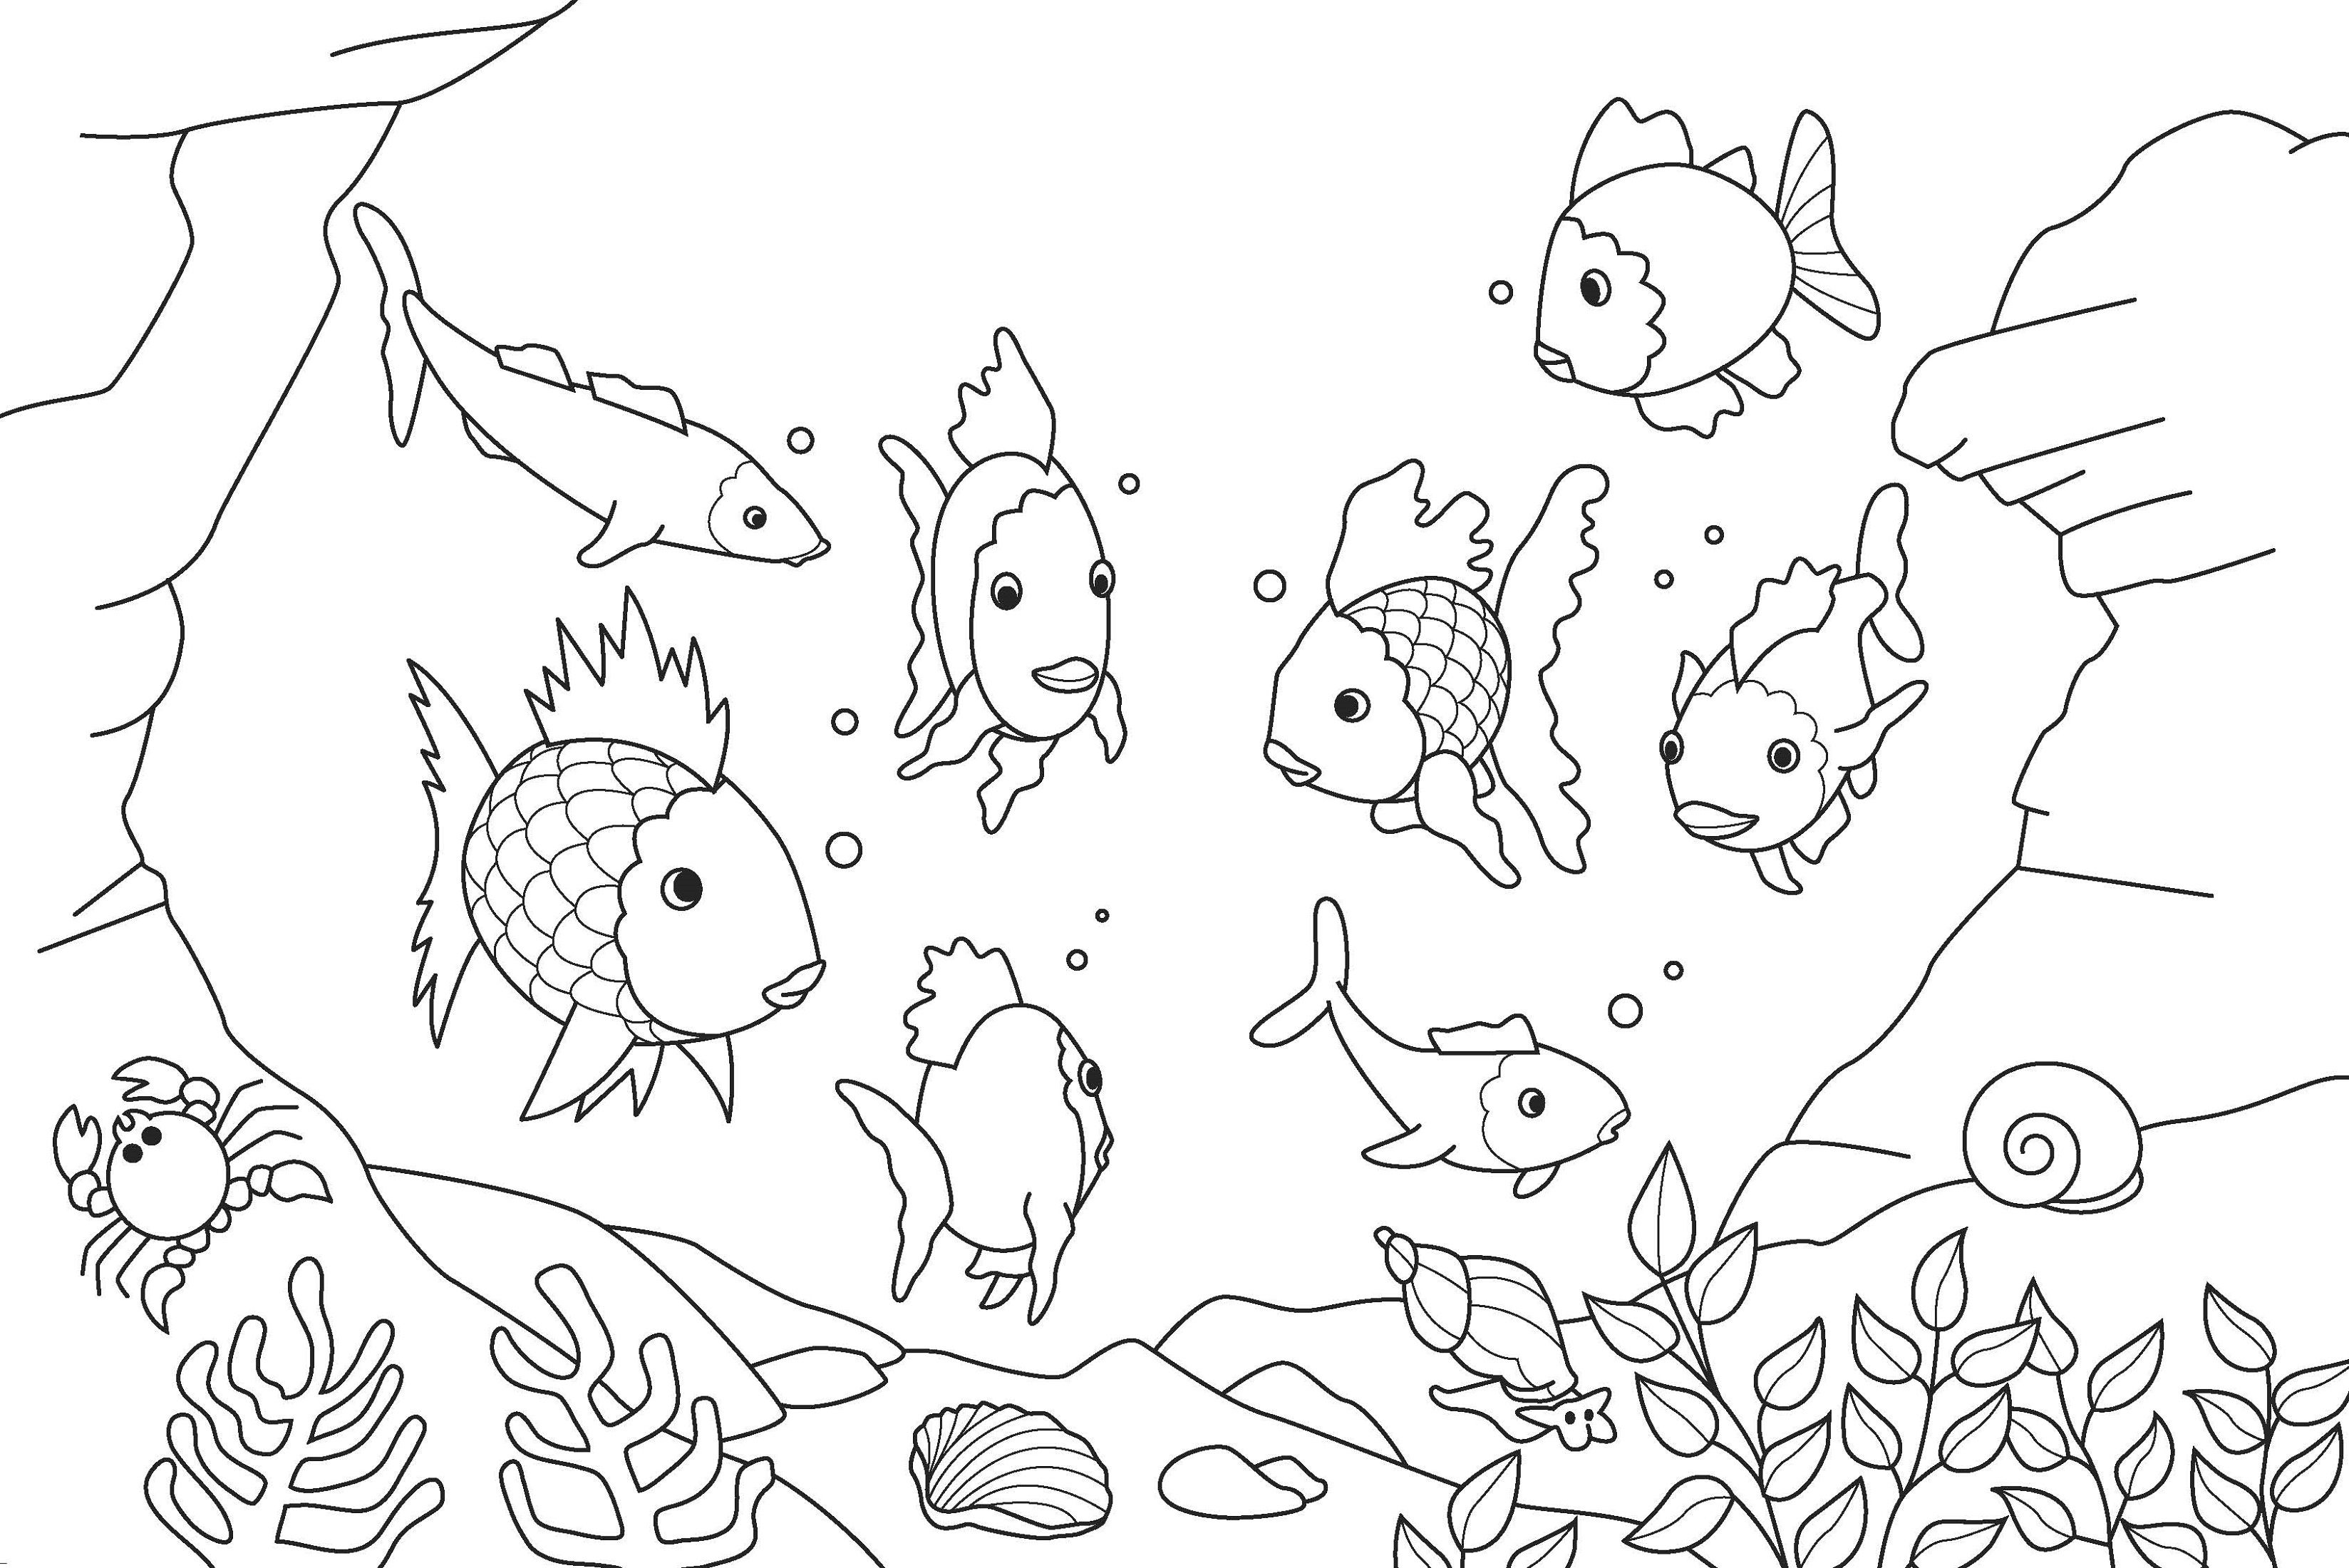 Fish Coloring Pages for Kids | K5 Worksheets | Animal ...